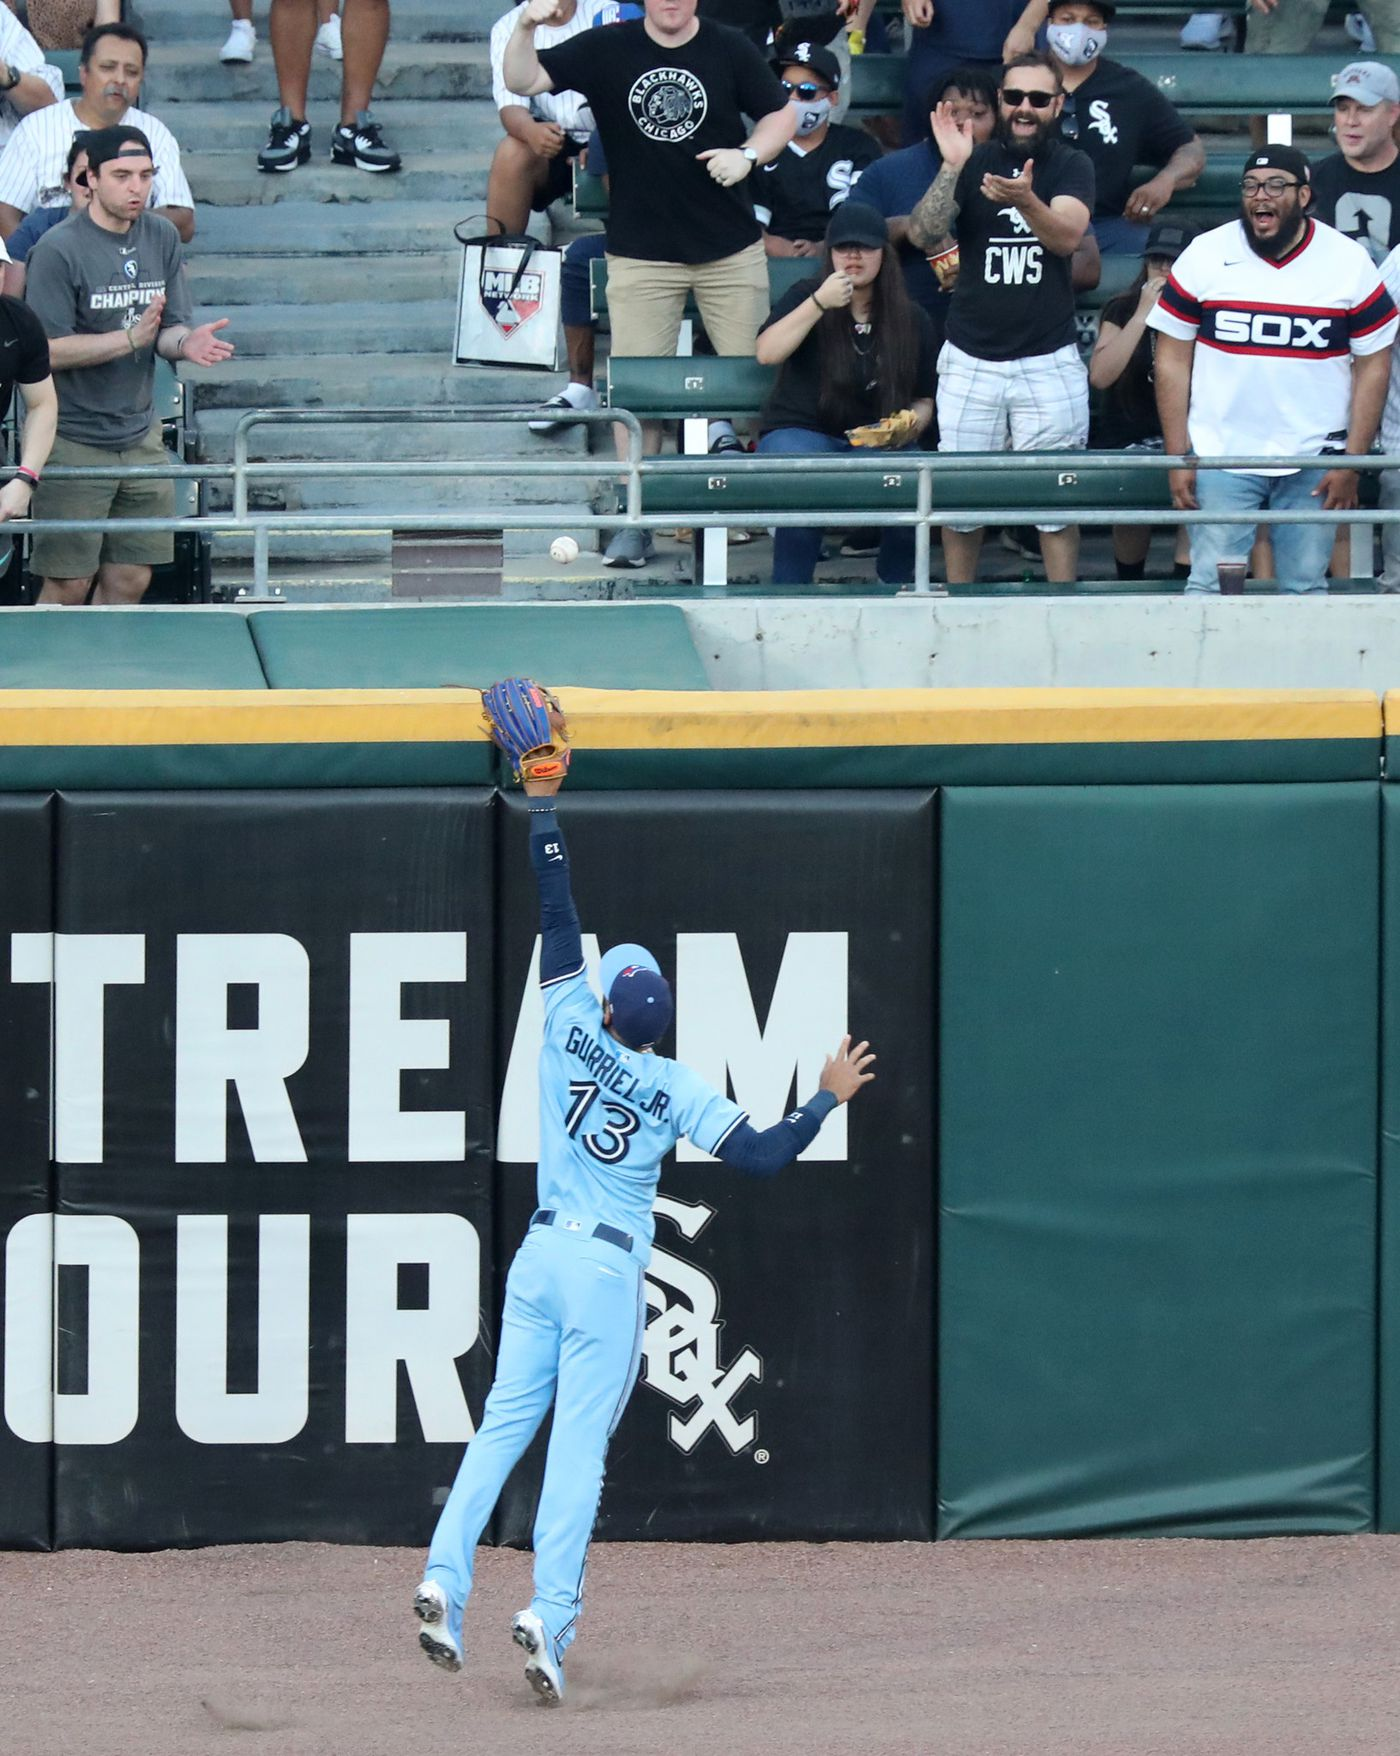 Blue Jays left fielder Lourdes Gurriel Jr. reaches for a ball off the bat of White Sox designated hitter Yermín Mercedes for a double in the first inning on June 10, 2021, at Guaranteed Rate Field.